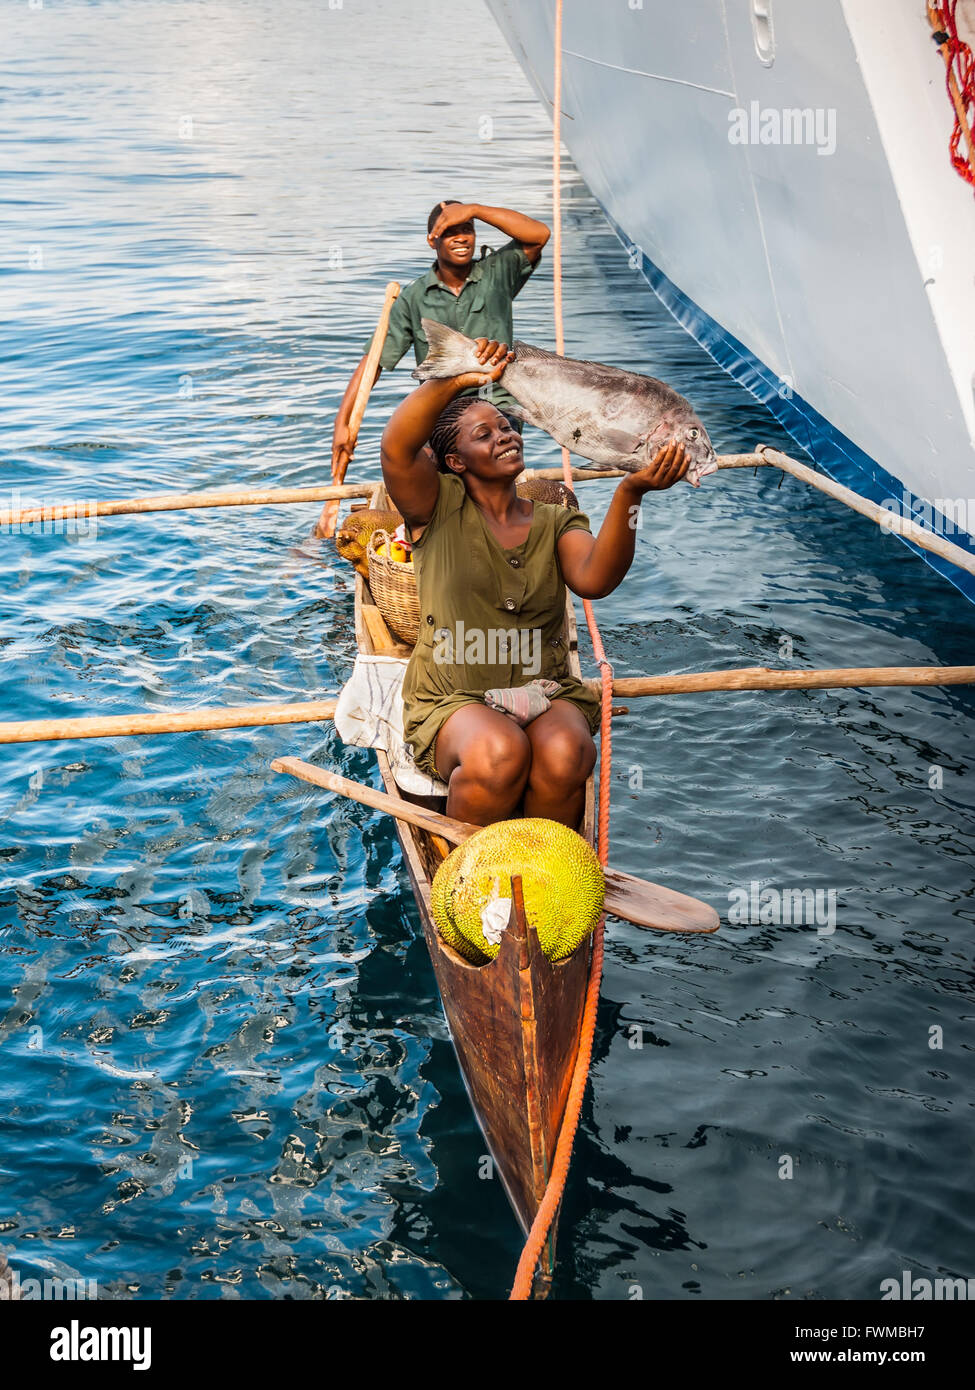 Malagasy vendors from their outrigger canoe offer crabs, fish and tropical fruits - Stock Image